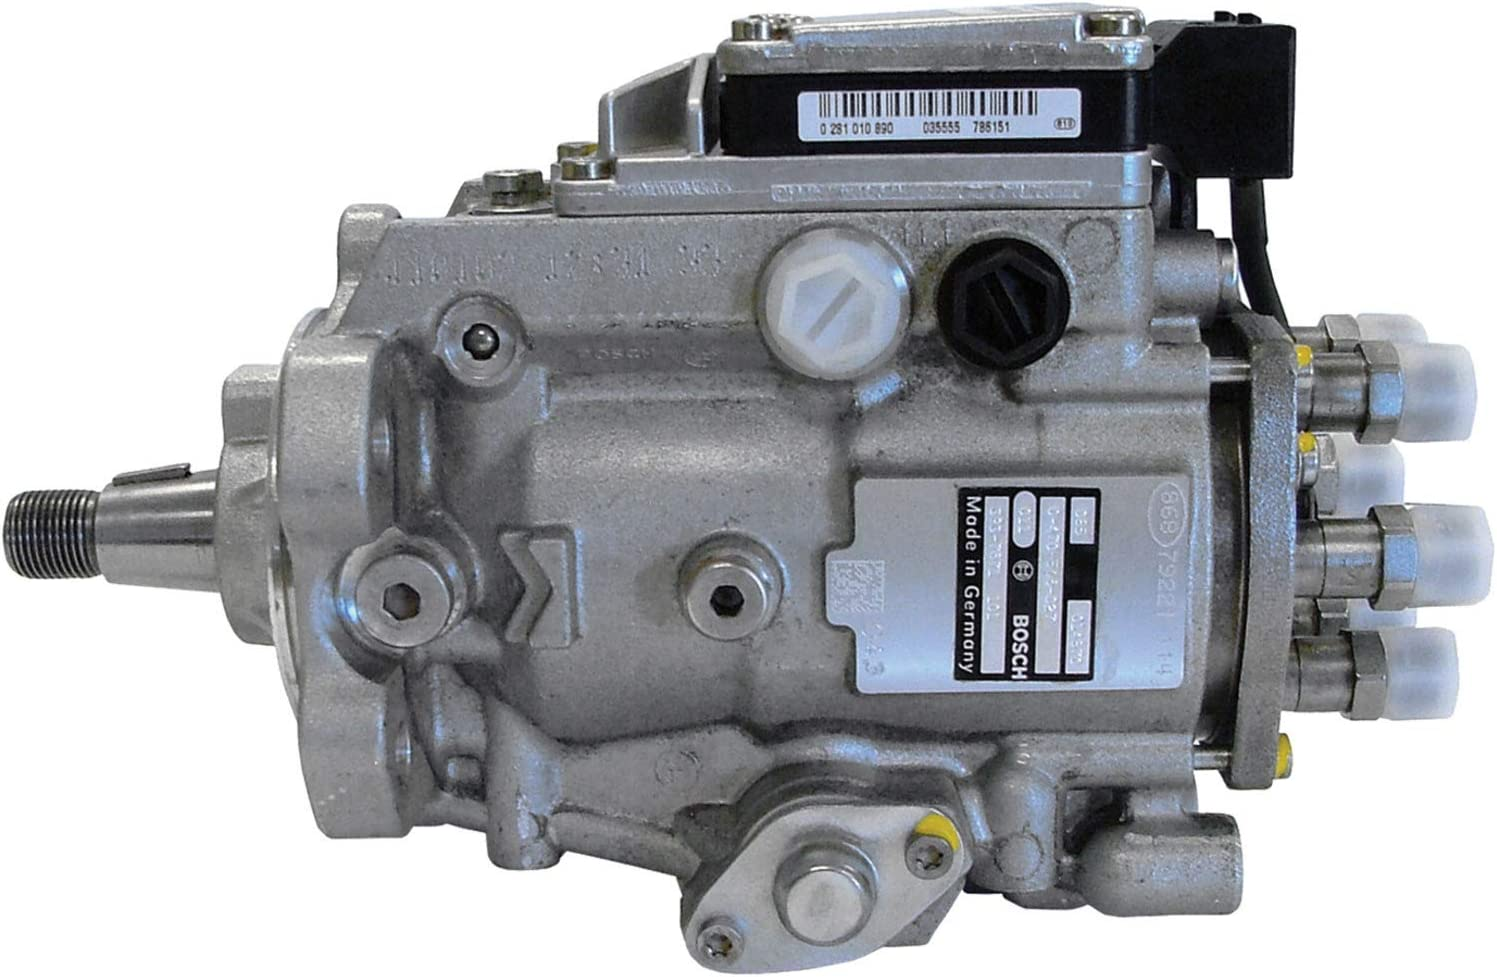 A1 Cardone 2H-301 Remanufactured Injection Bombing new work Pump Quantity limited Fuel